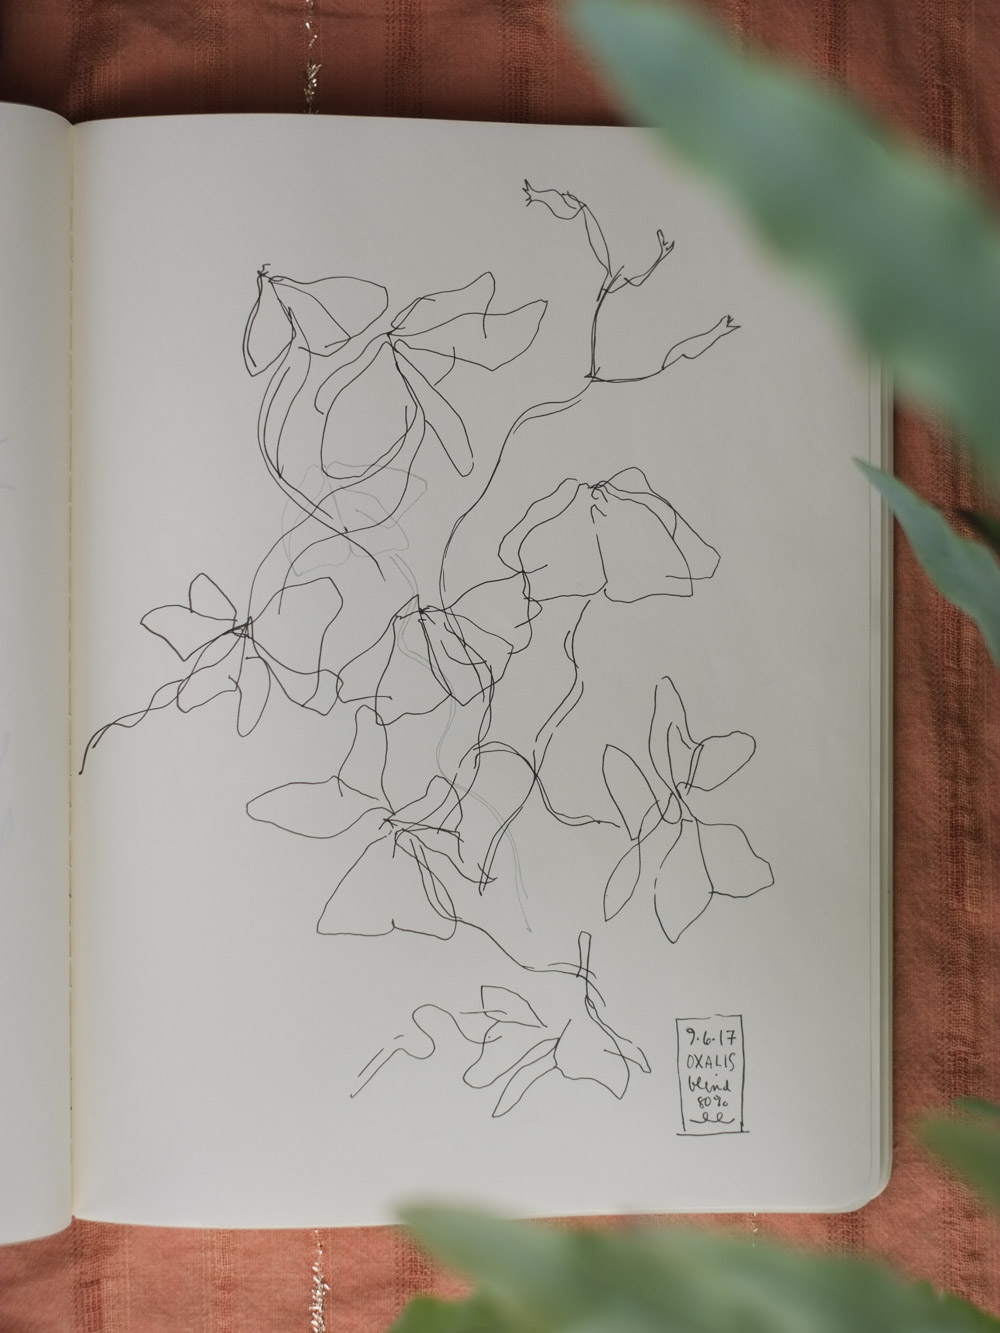 Erin_Ellis_daily_botanical_blind_drawings_sept_2017.jpg-6.jpg